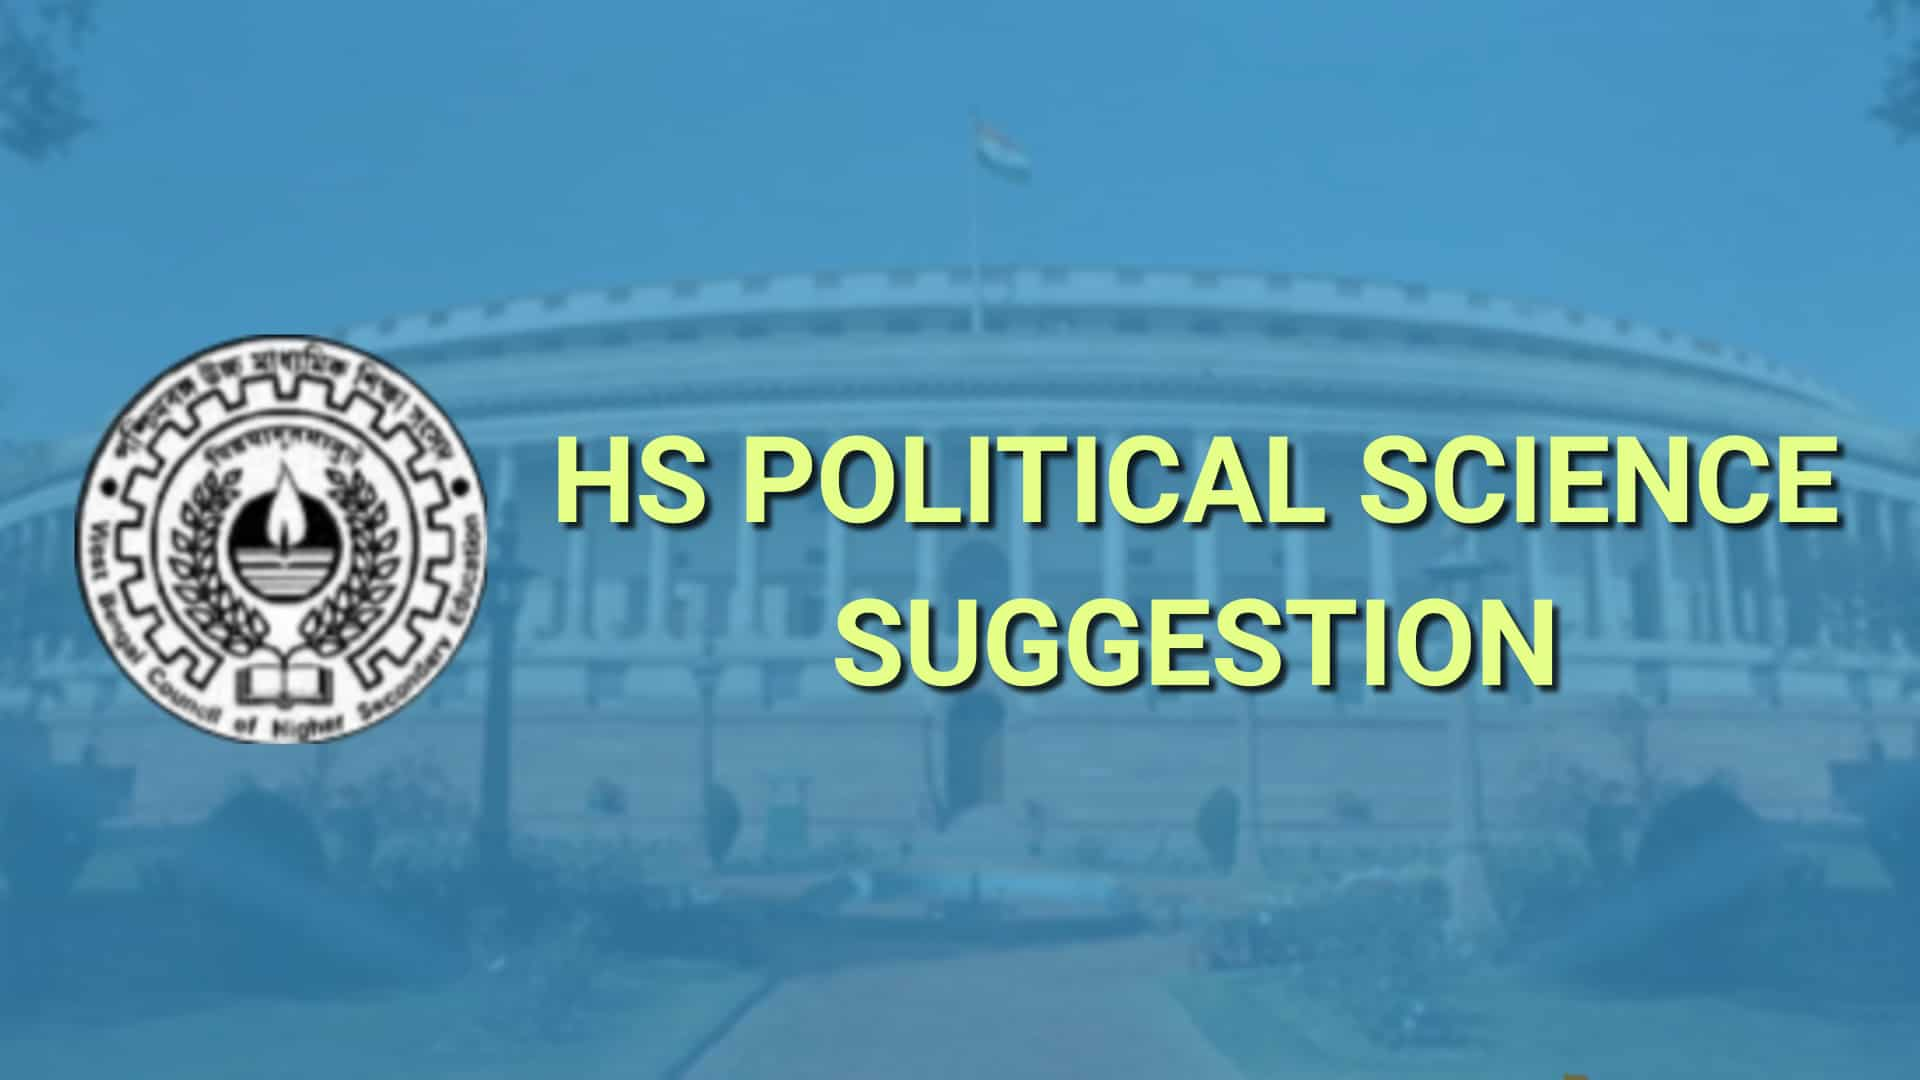 HS Political science suggestion